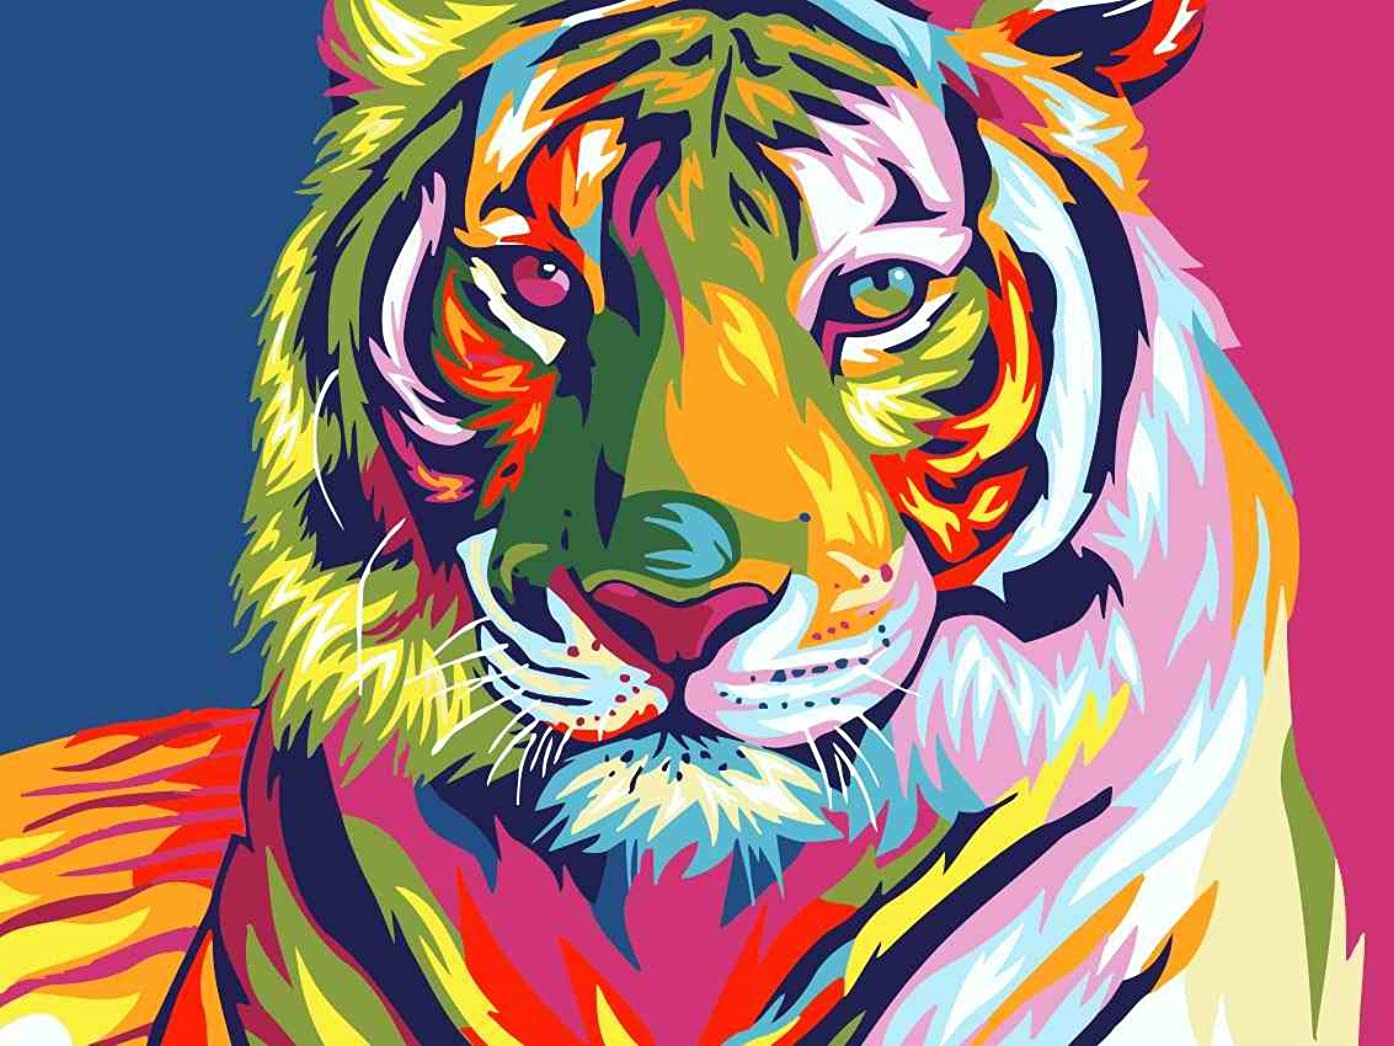 """iCoostor Paint by Numbers DIY Acrylic Painting Kit for Kids & Adults Beginner – 16"""" x 20"""" Colorful Tiger Pattern with 3 Brushes & Bright Colors…"""